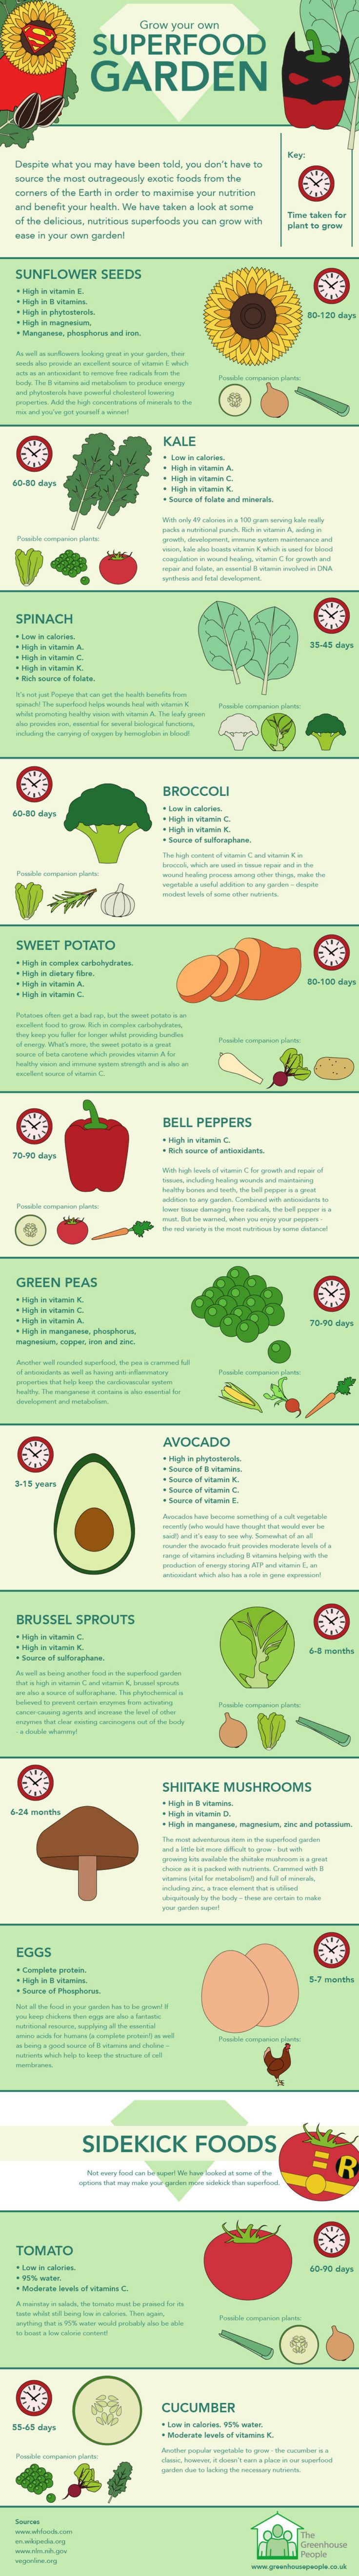 Grow your own superfood garden [infographic]